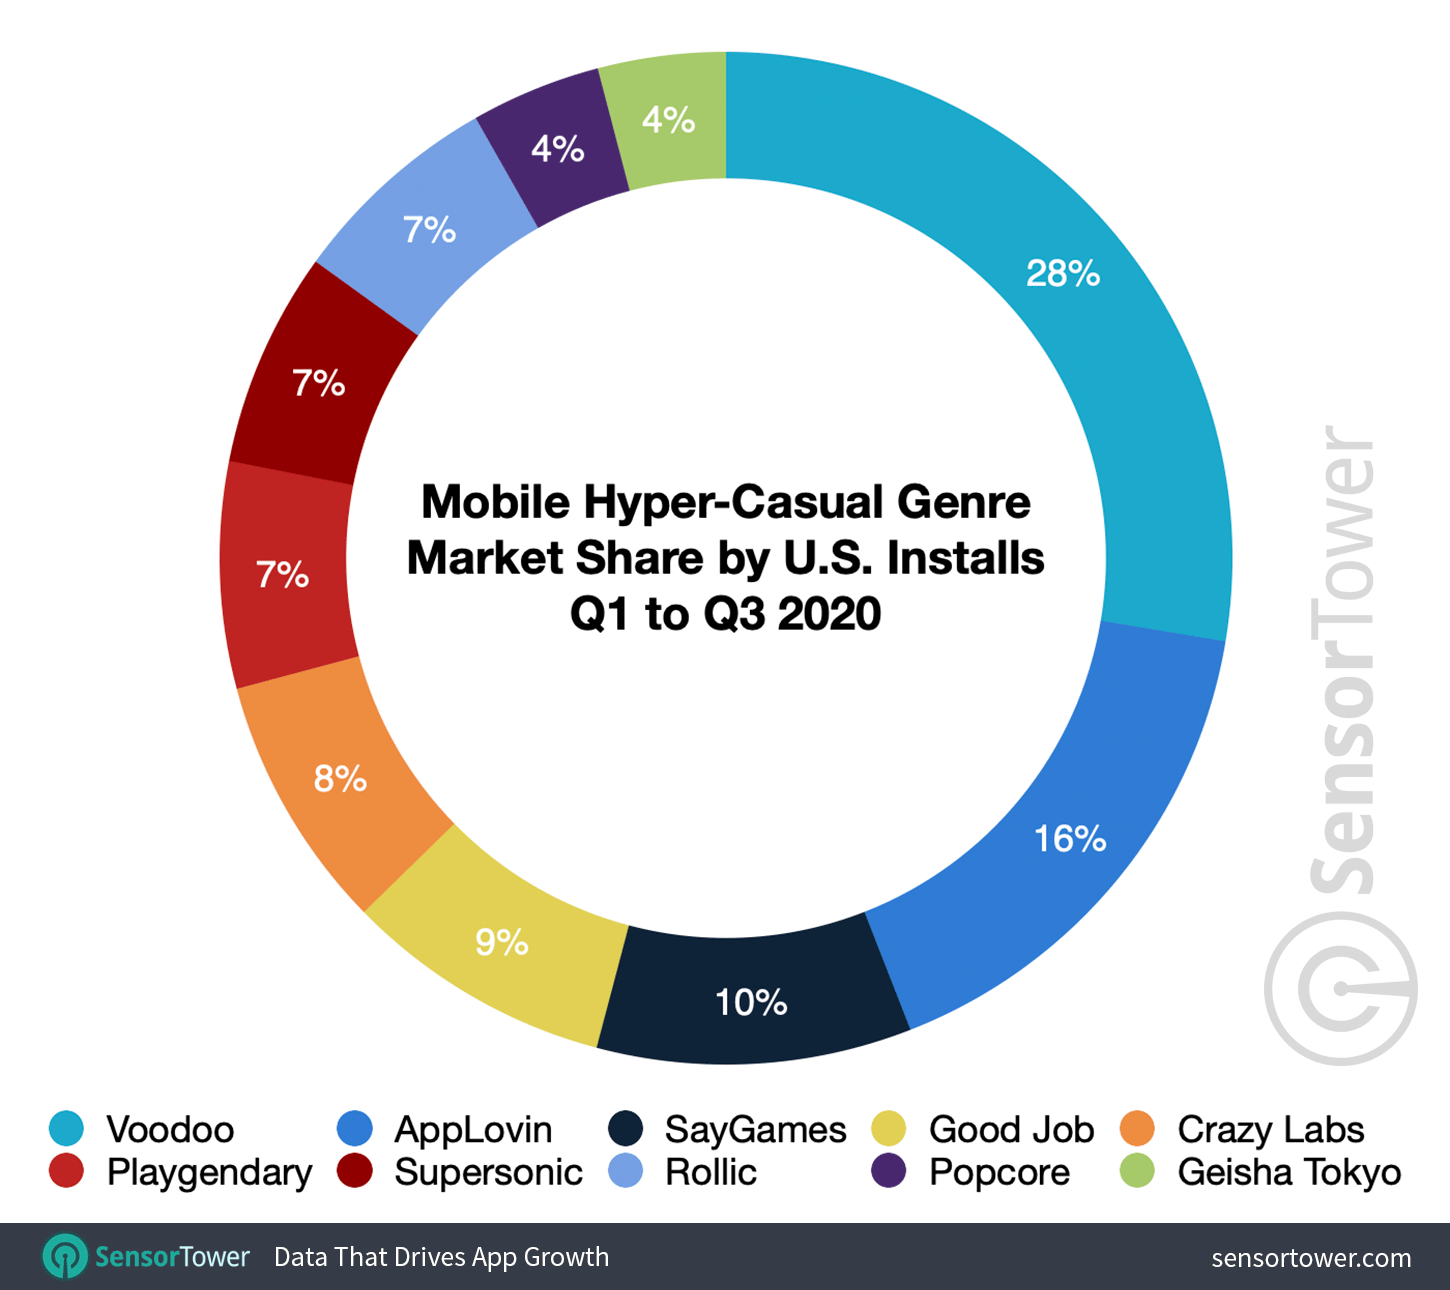 Mobile Hyper-Casual Genre Market Share by U.S. Downloads for Q1 to Q3 2020